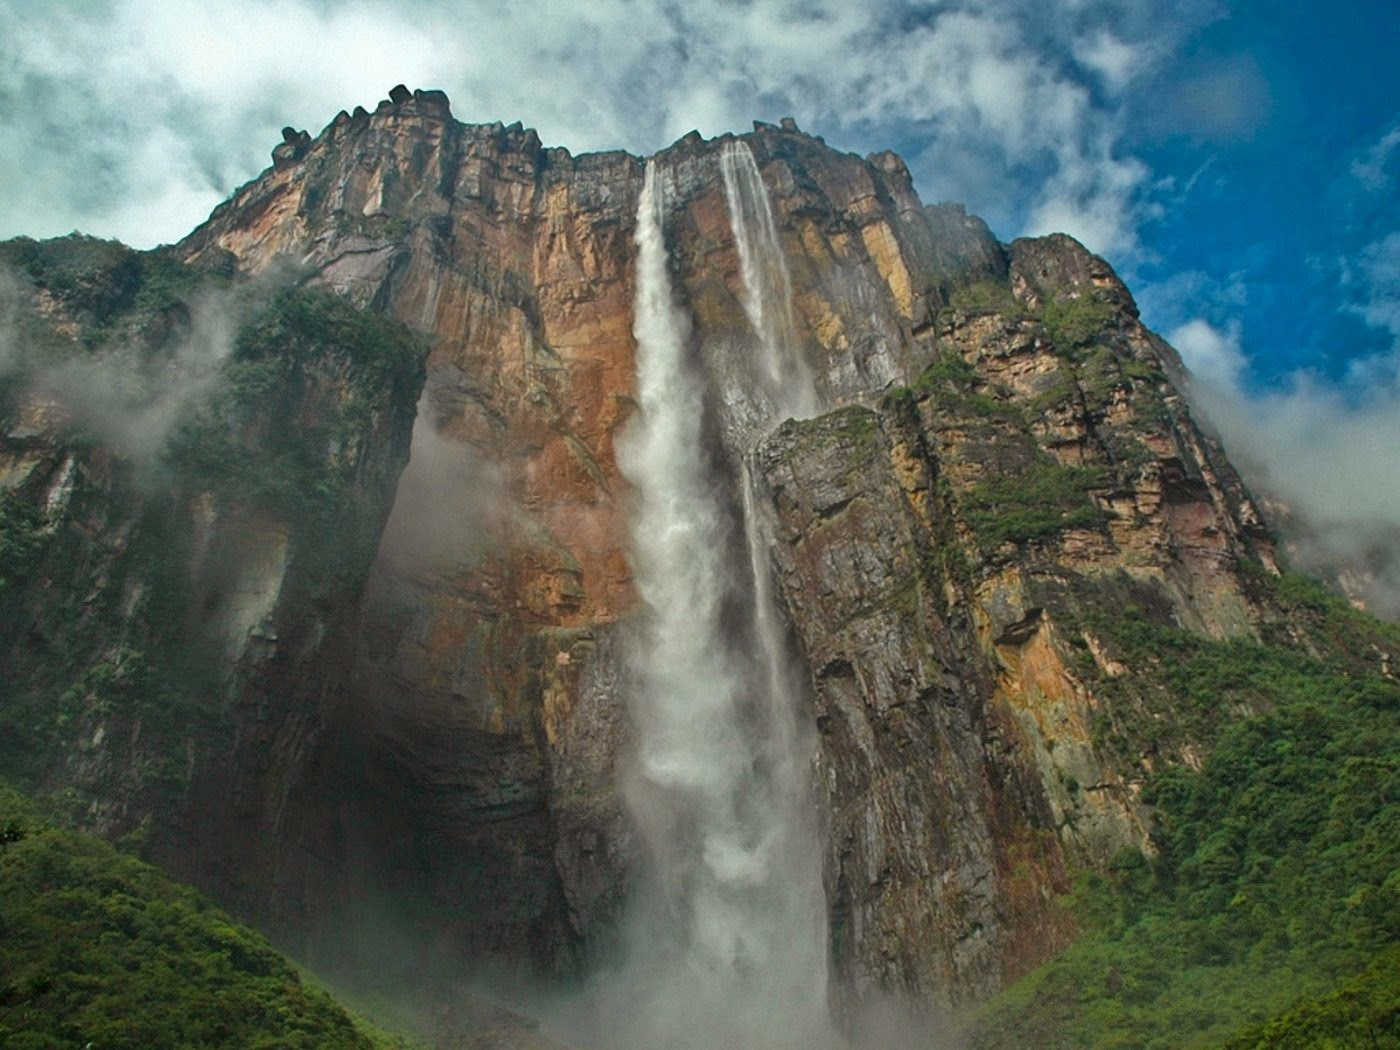 Most Amazing Waterfall Mountains Nature Place Widescreen Image